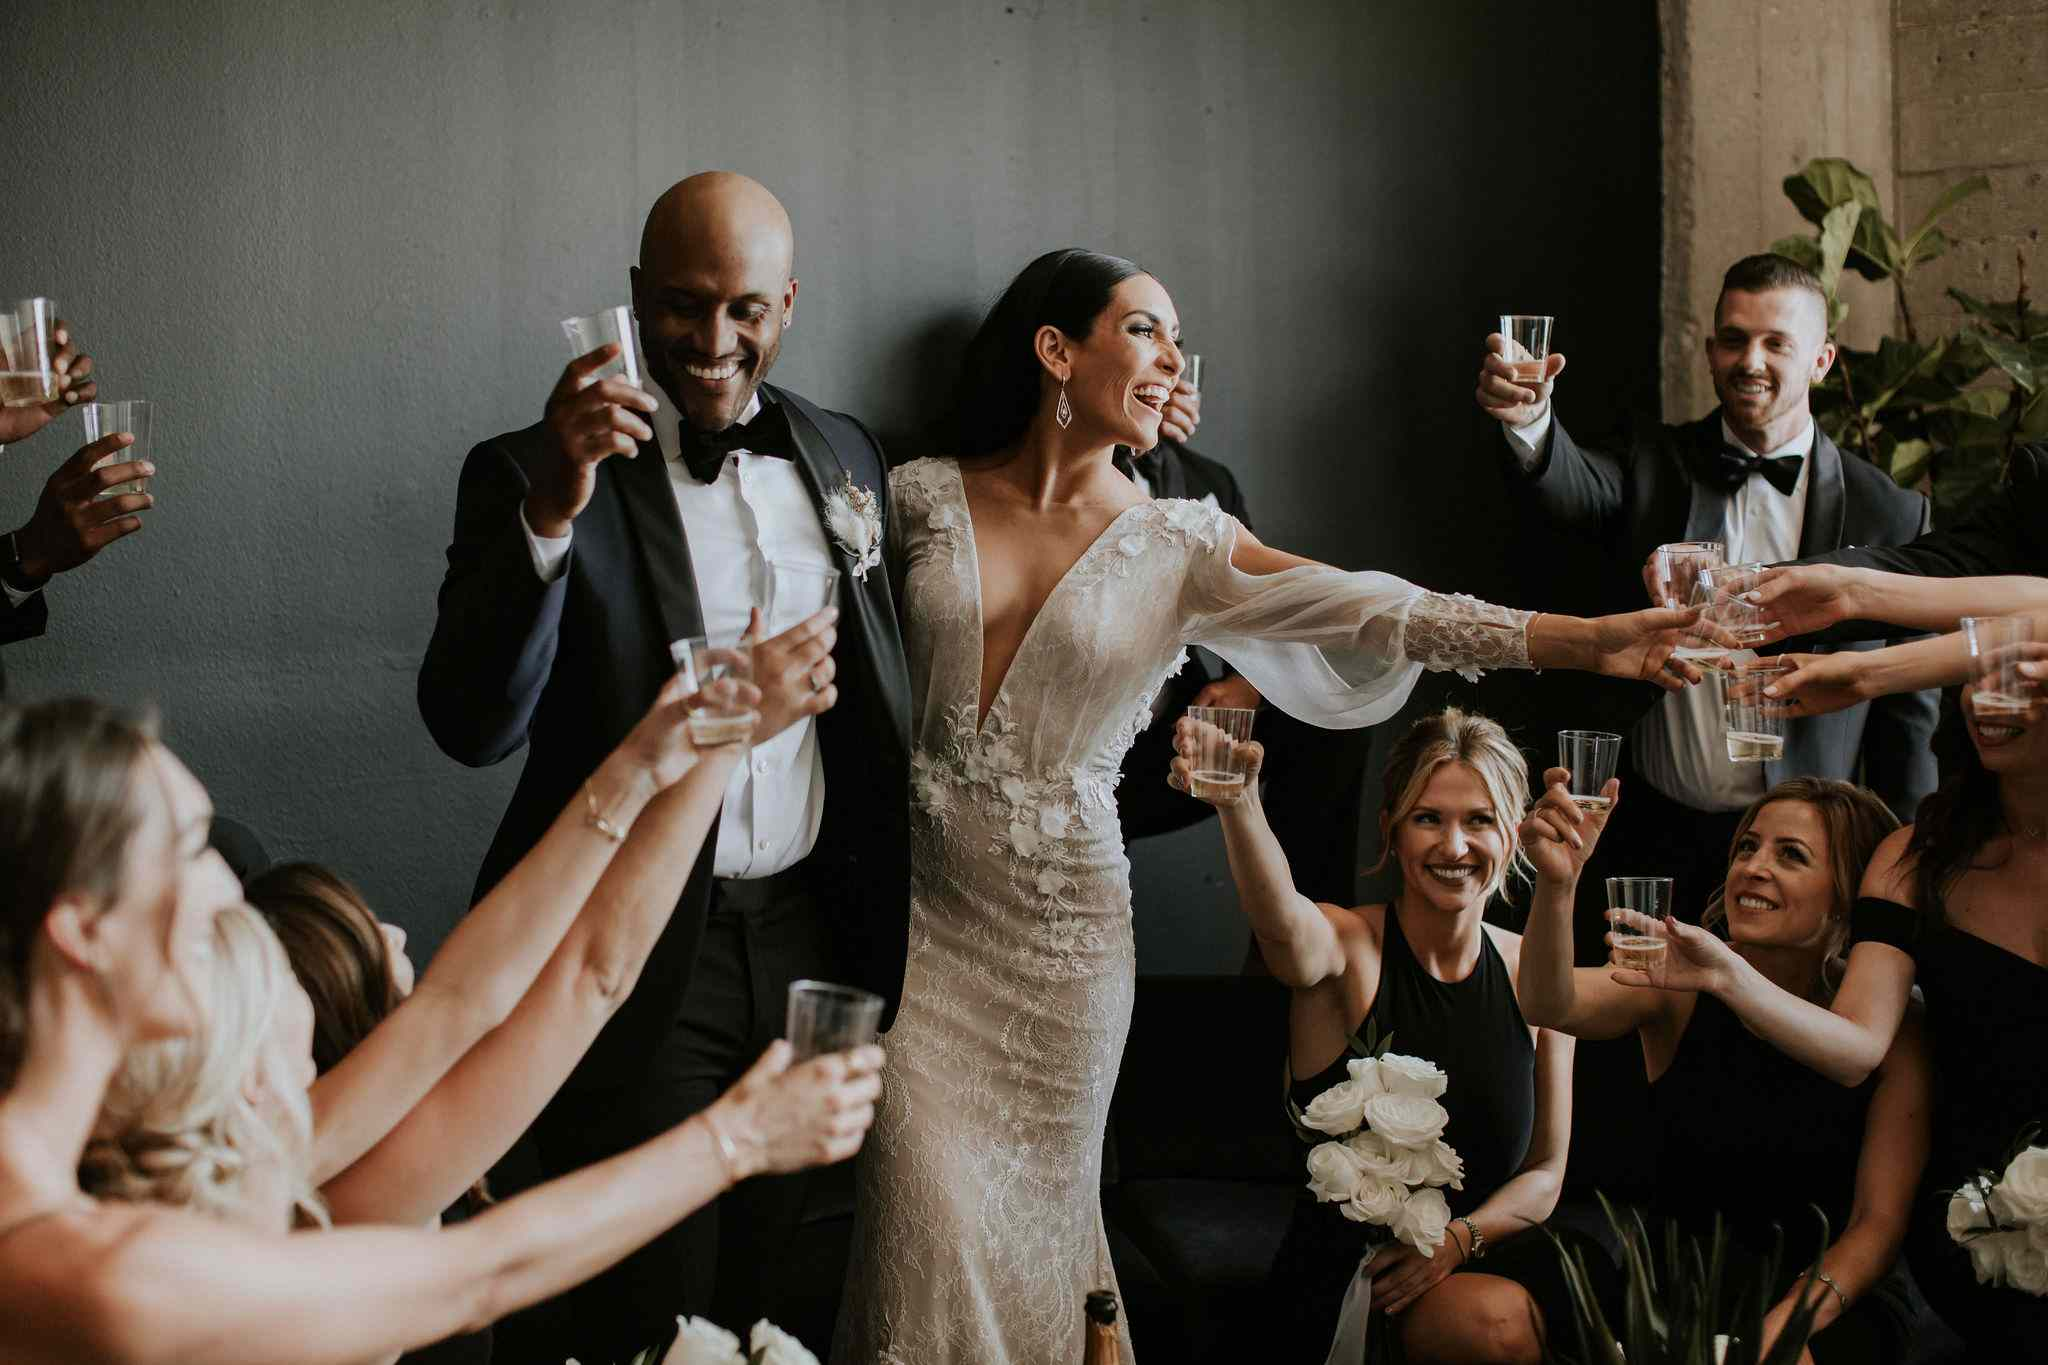 wedding party drinking champagne